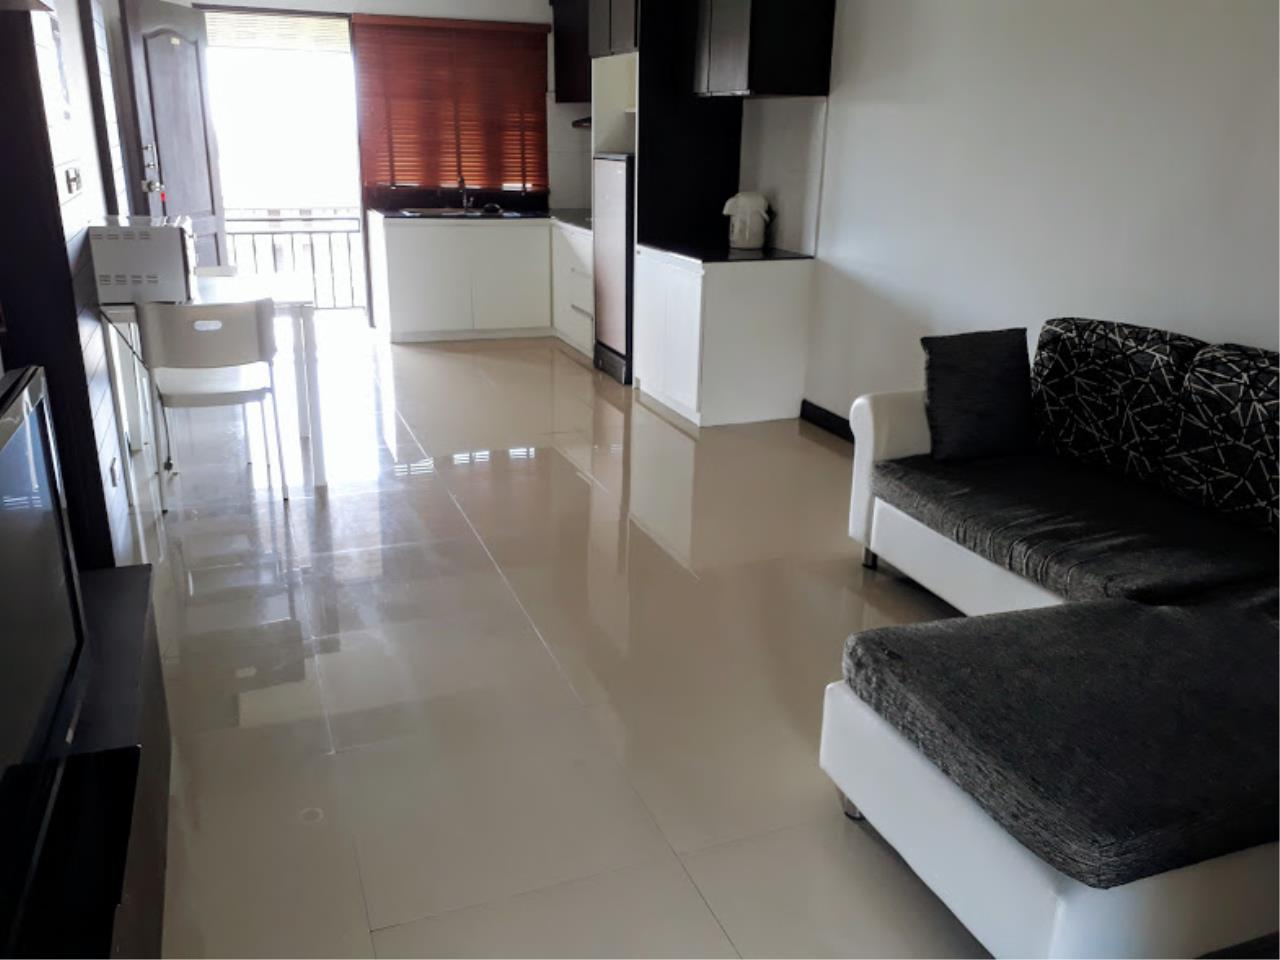 RE/MAX Island Real Estate Agency's One bedroom apartment with bathtub in Chaweng  3